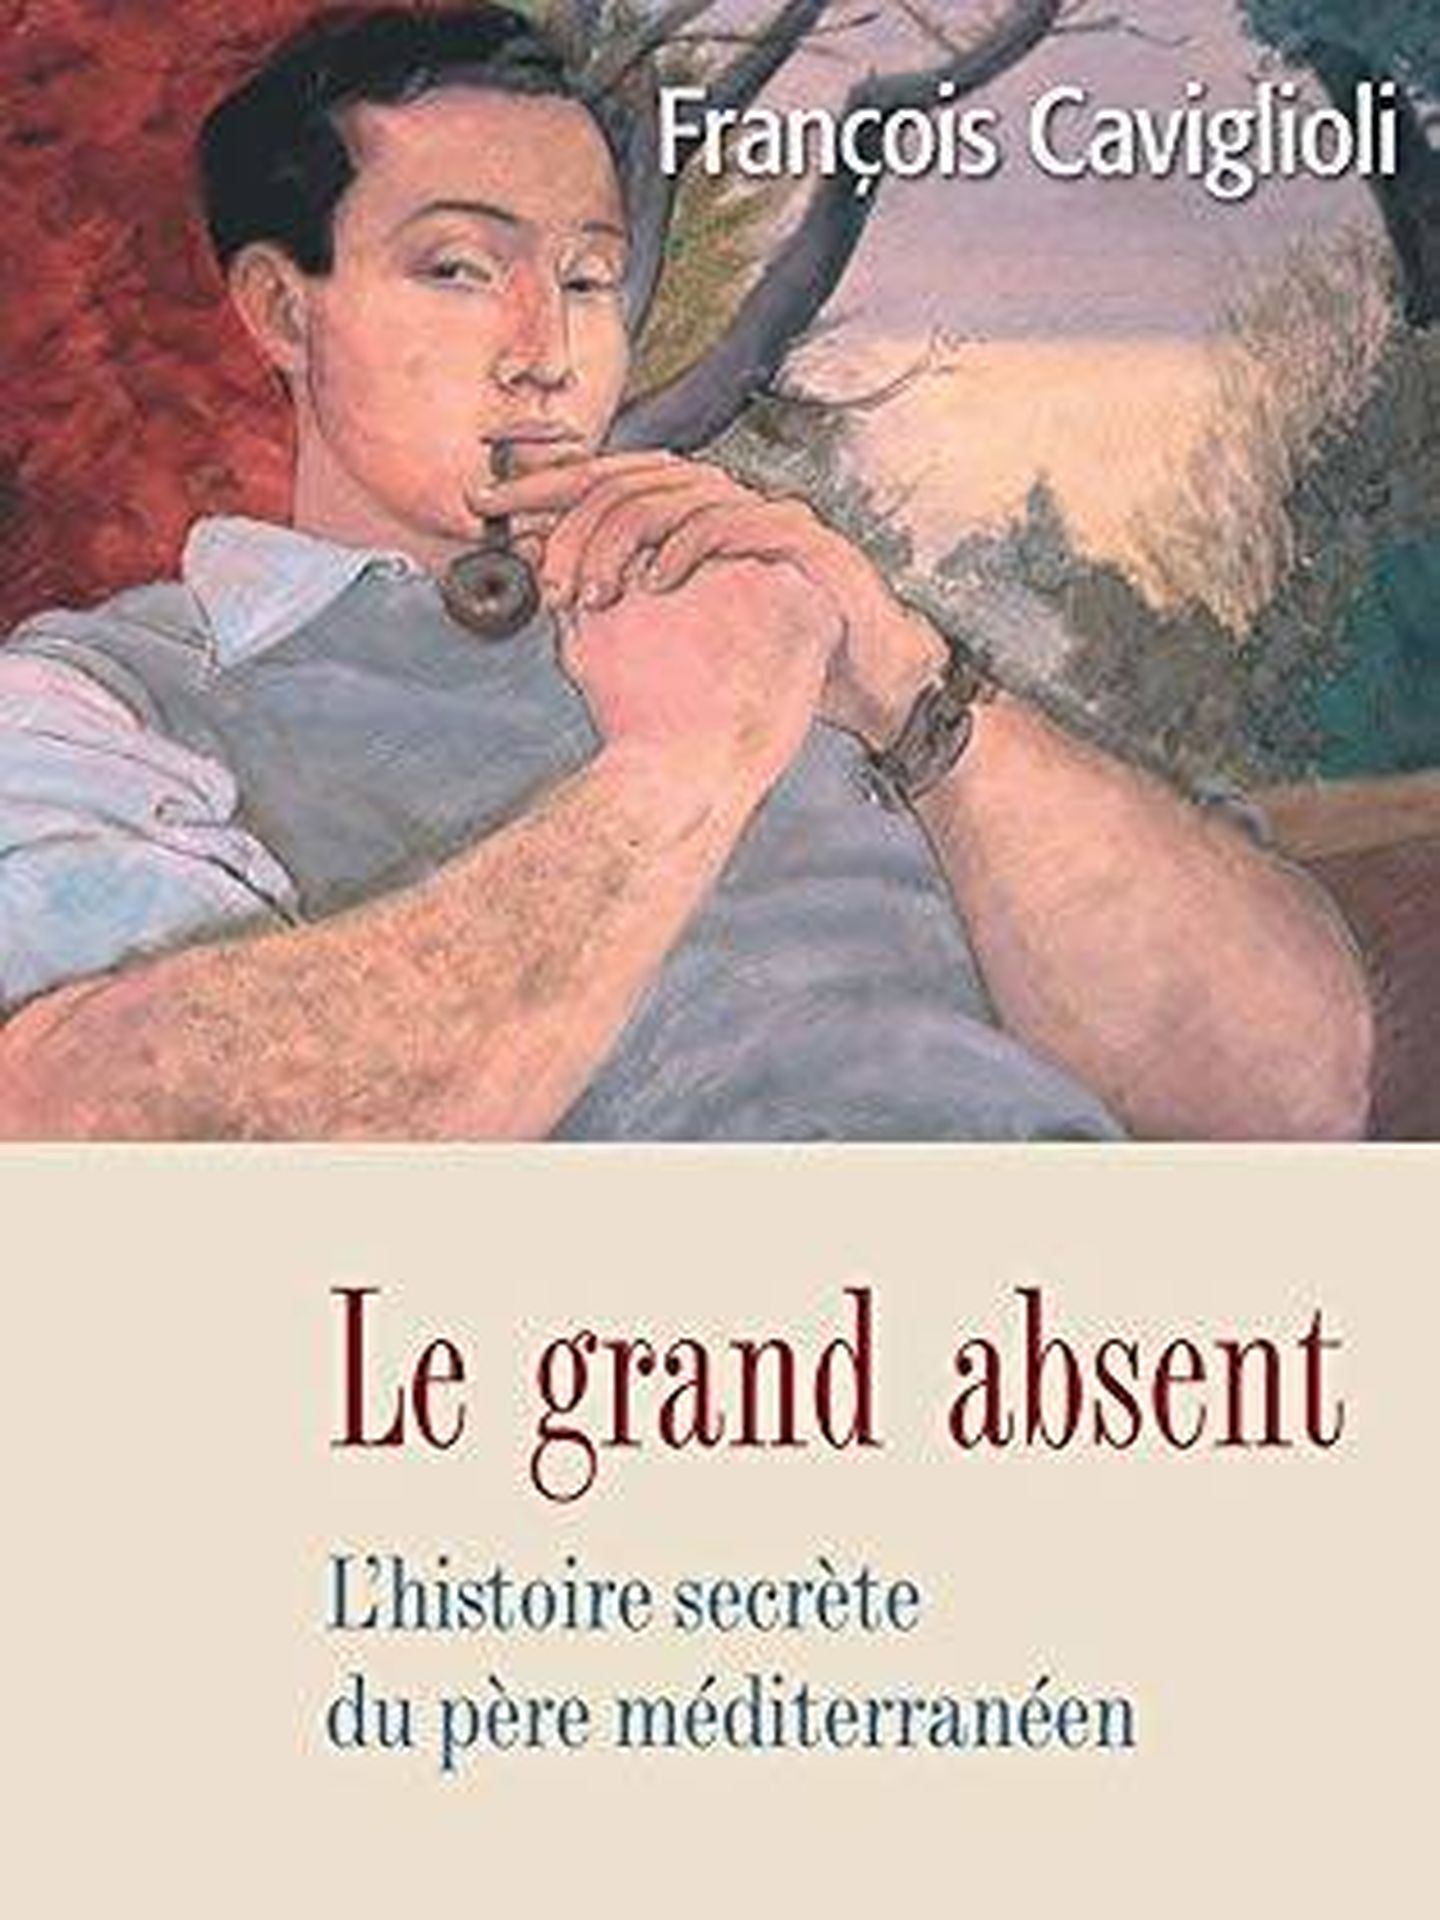 'Le grand absent'.